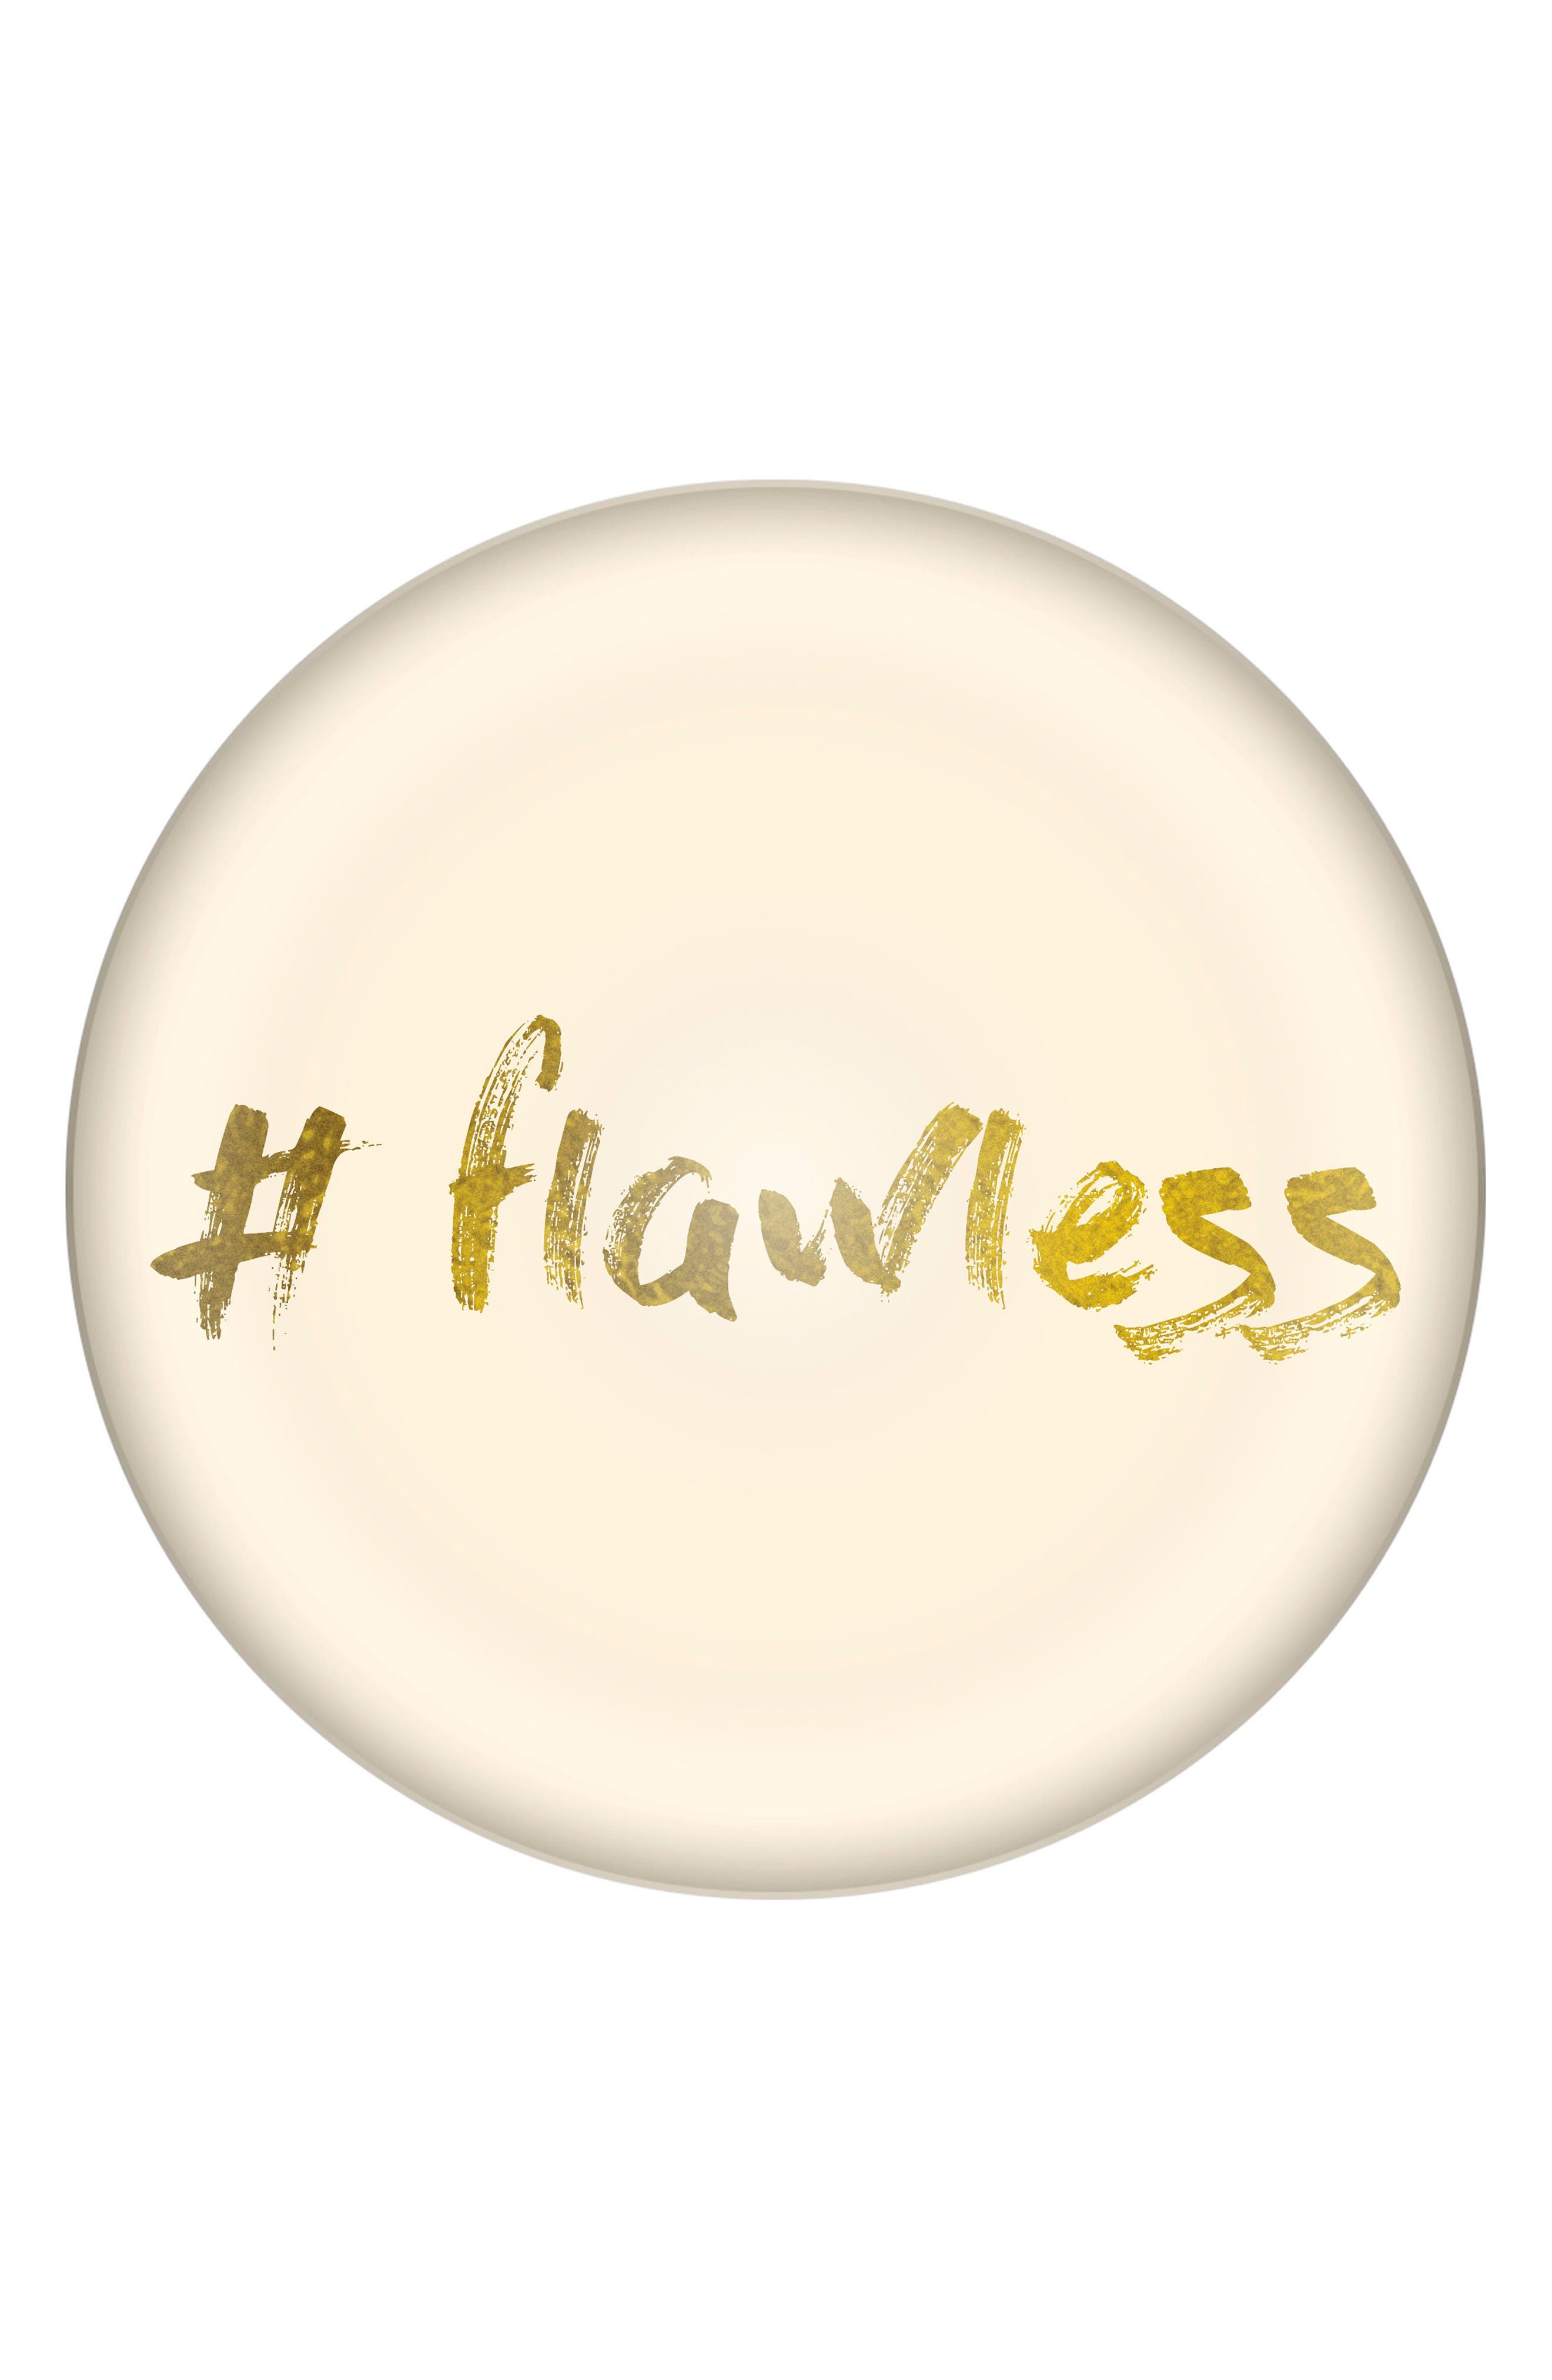 CATHY'S CONCEPTS Flawless Domed Glass Paperweight, Main, color, 710